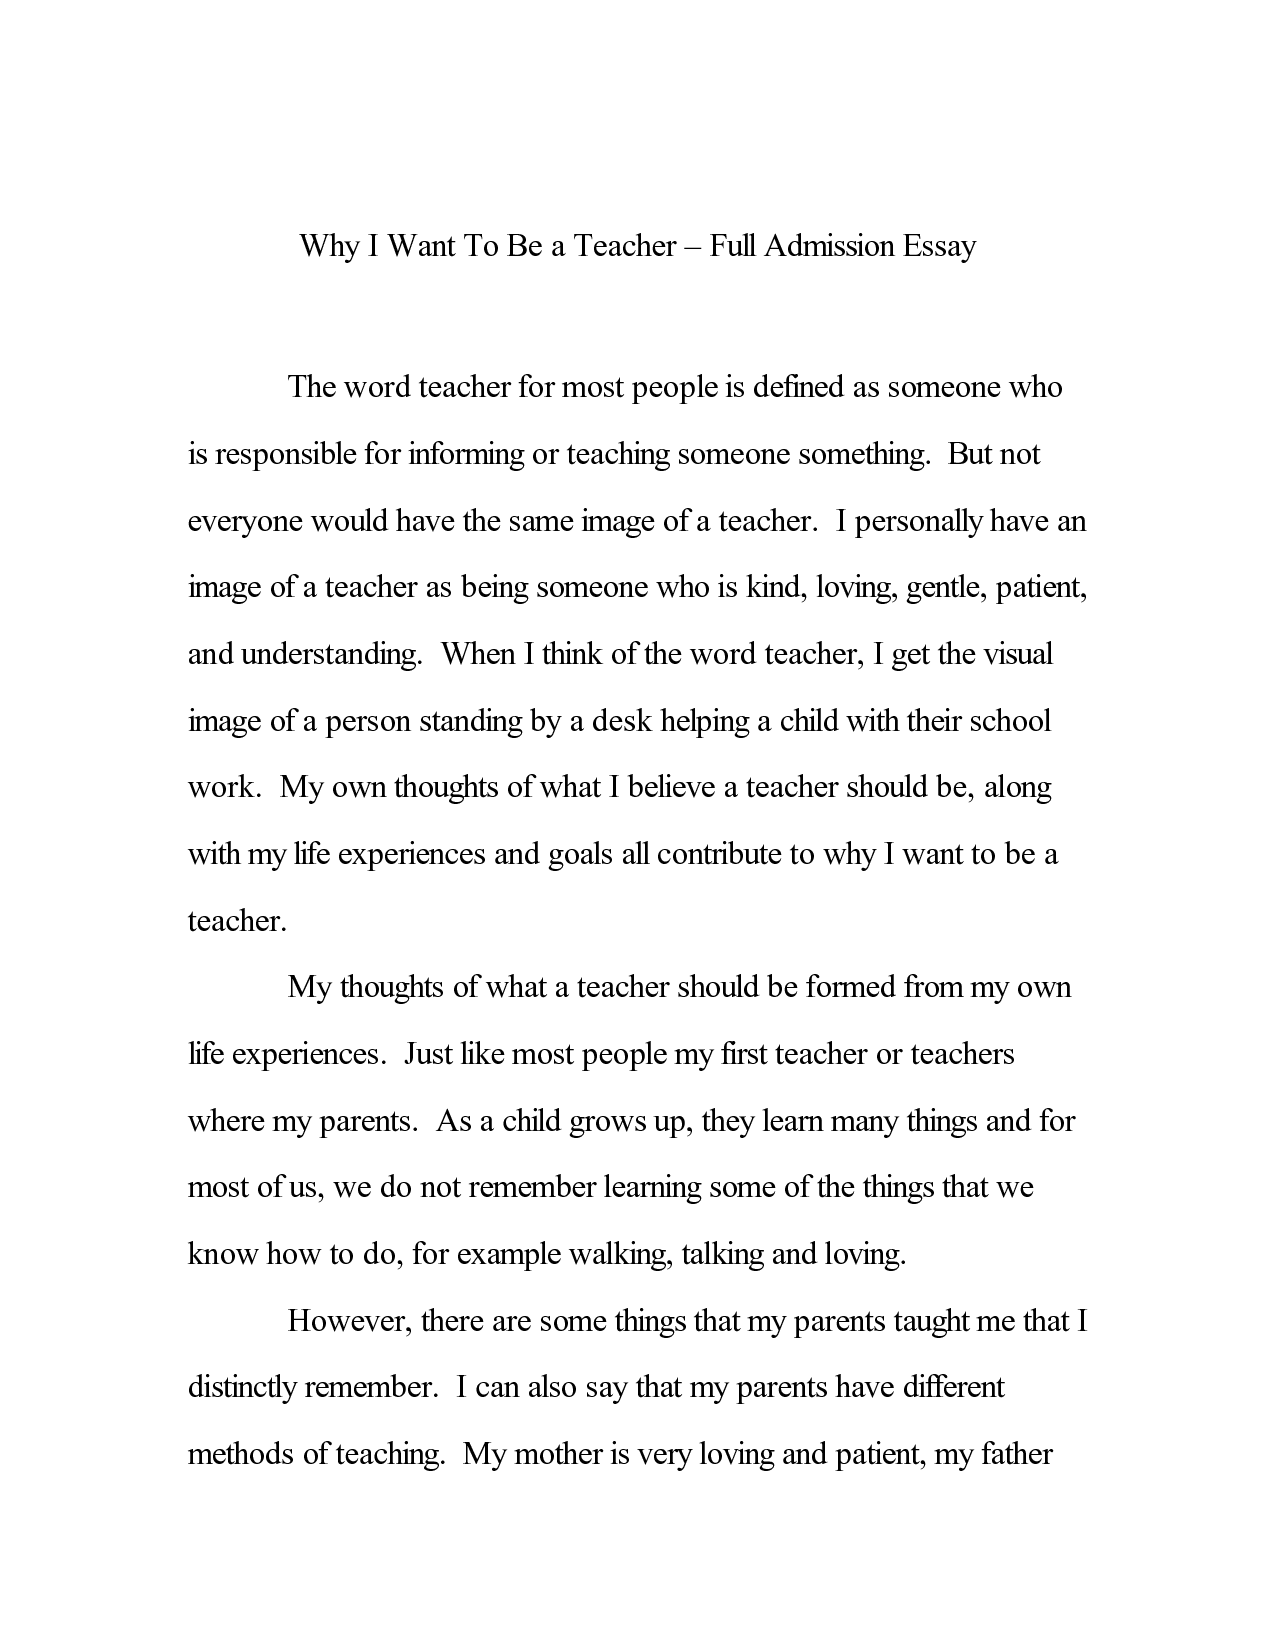 001 Admission Essay Example Magnificent Examples About Yourself College Help Uc Prompts Full